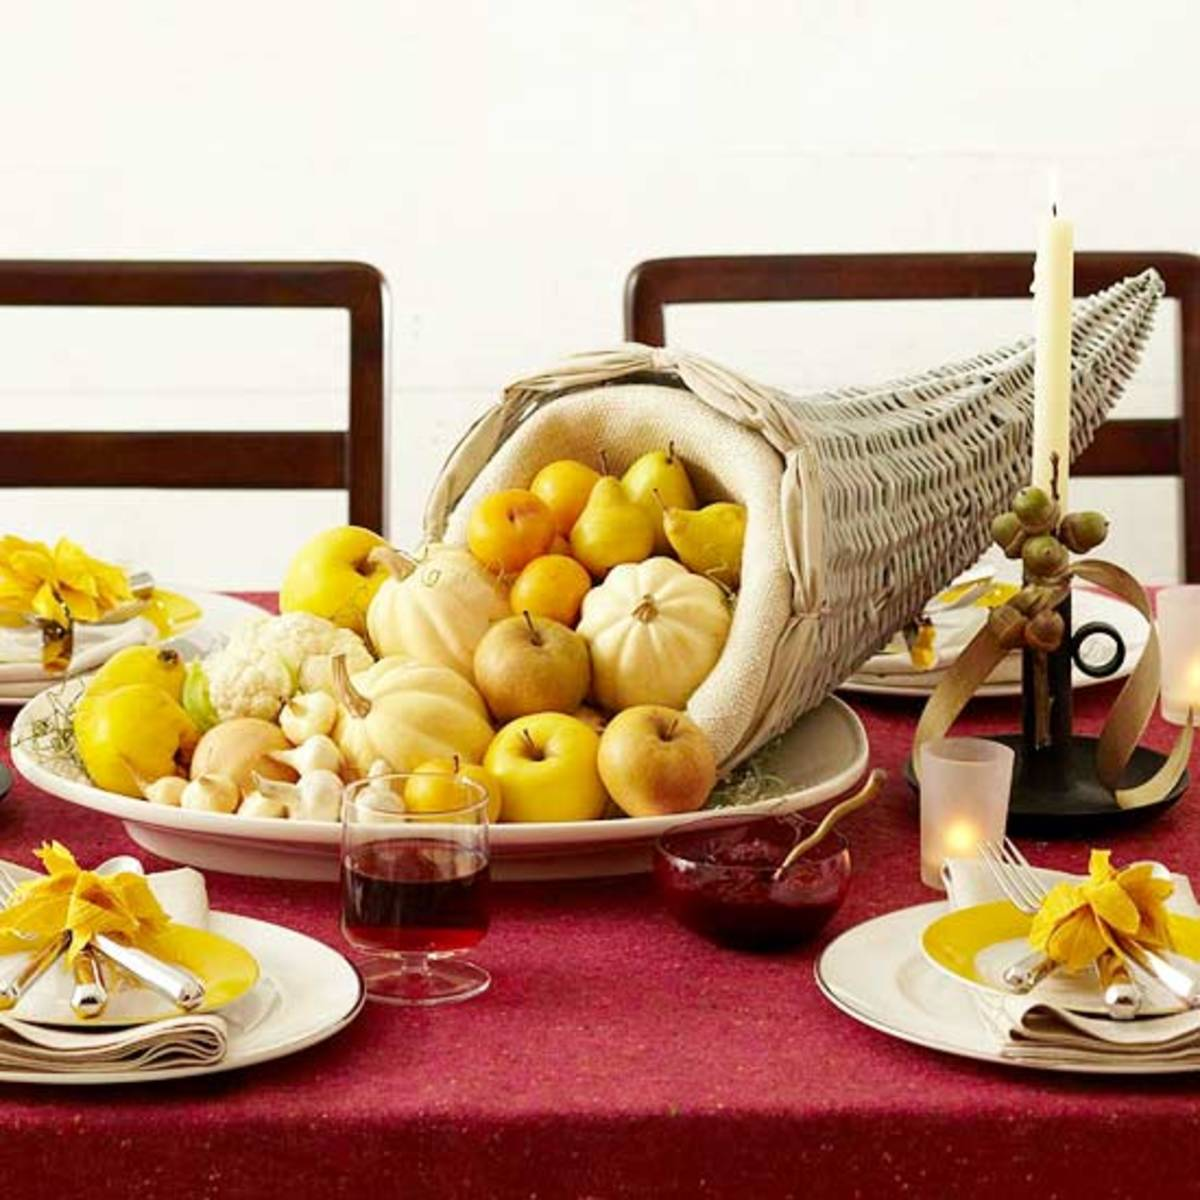 Fill a cornucopia basket full of food of the same colors to provide cohesion.